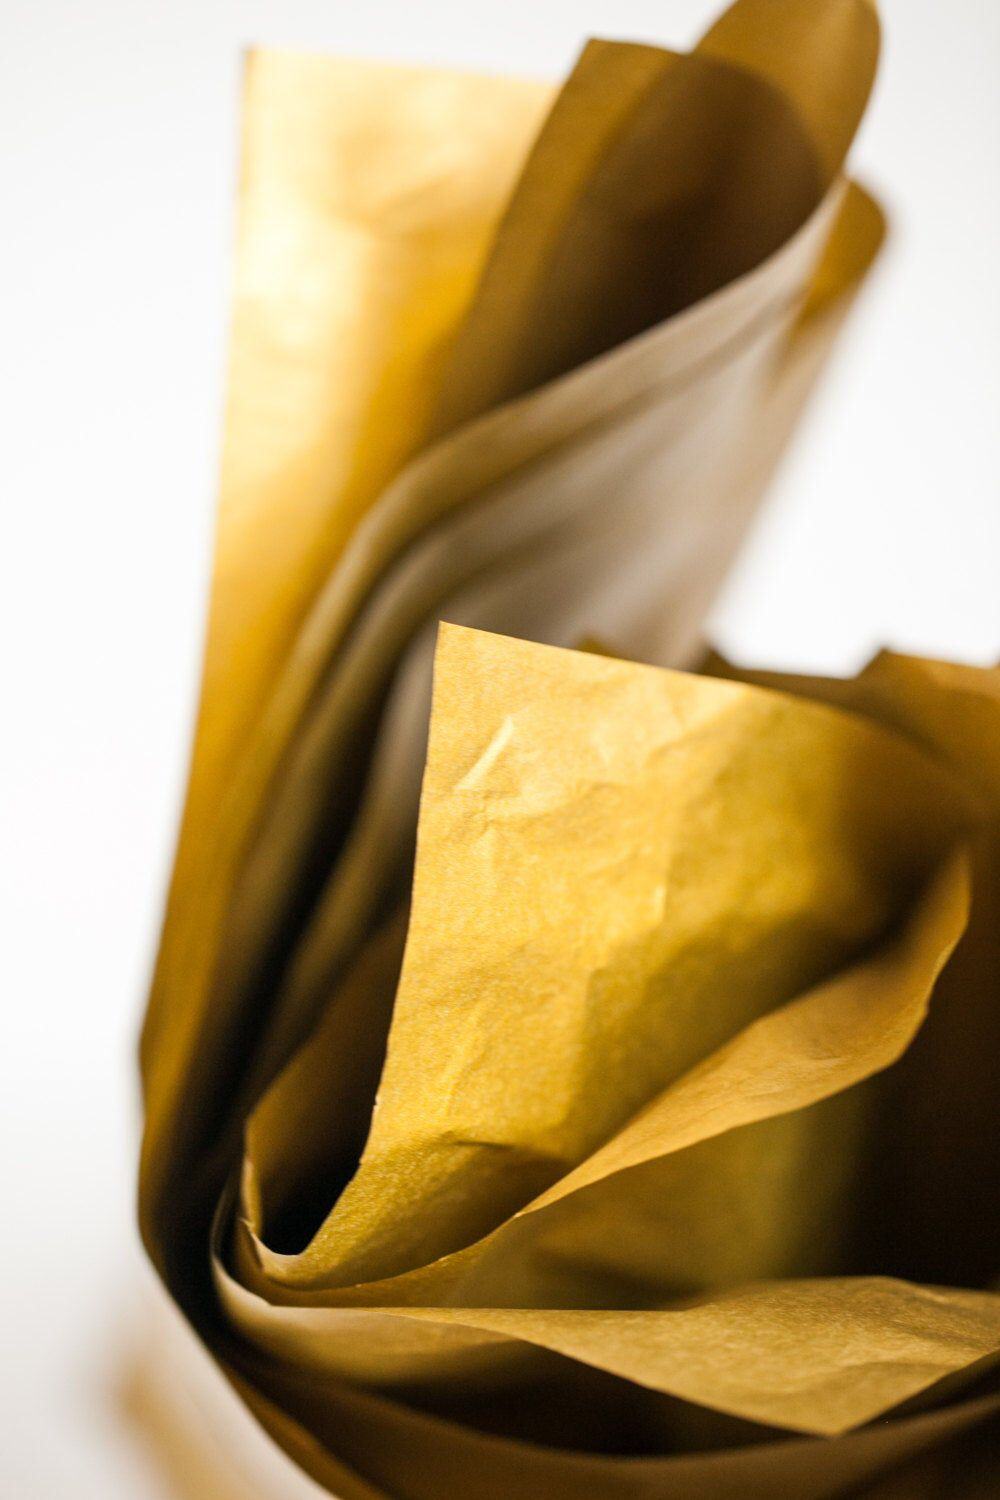 Metallic Gold Tissue Paper 10 Sheets Double Sided Deep Gold Tissue Paper Brass Tissue Paper Bronze Gold Tissue Paper Dark Gold In 2020 Gold Tissue Paper Tissue Paper Gold Metal